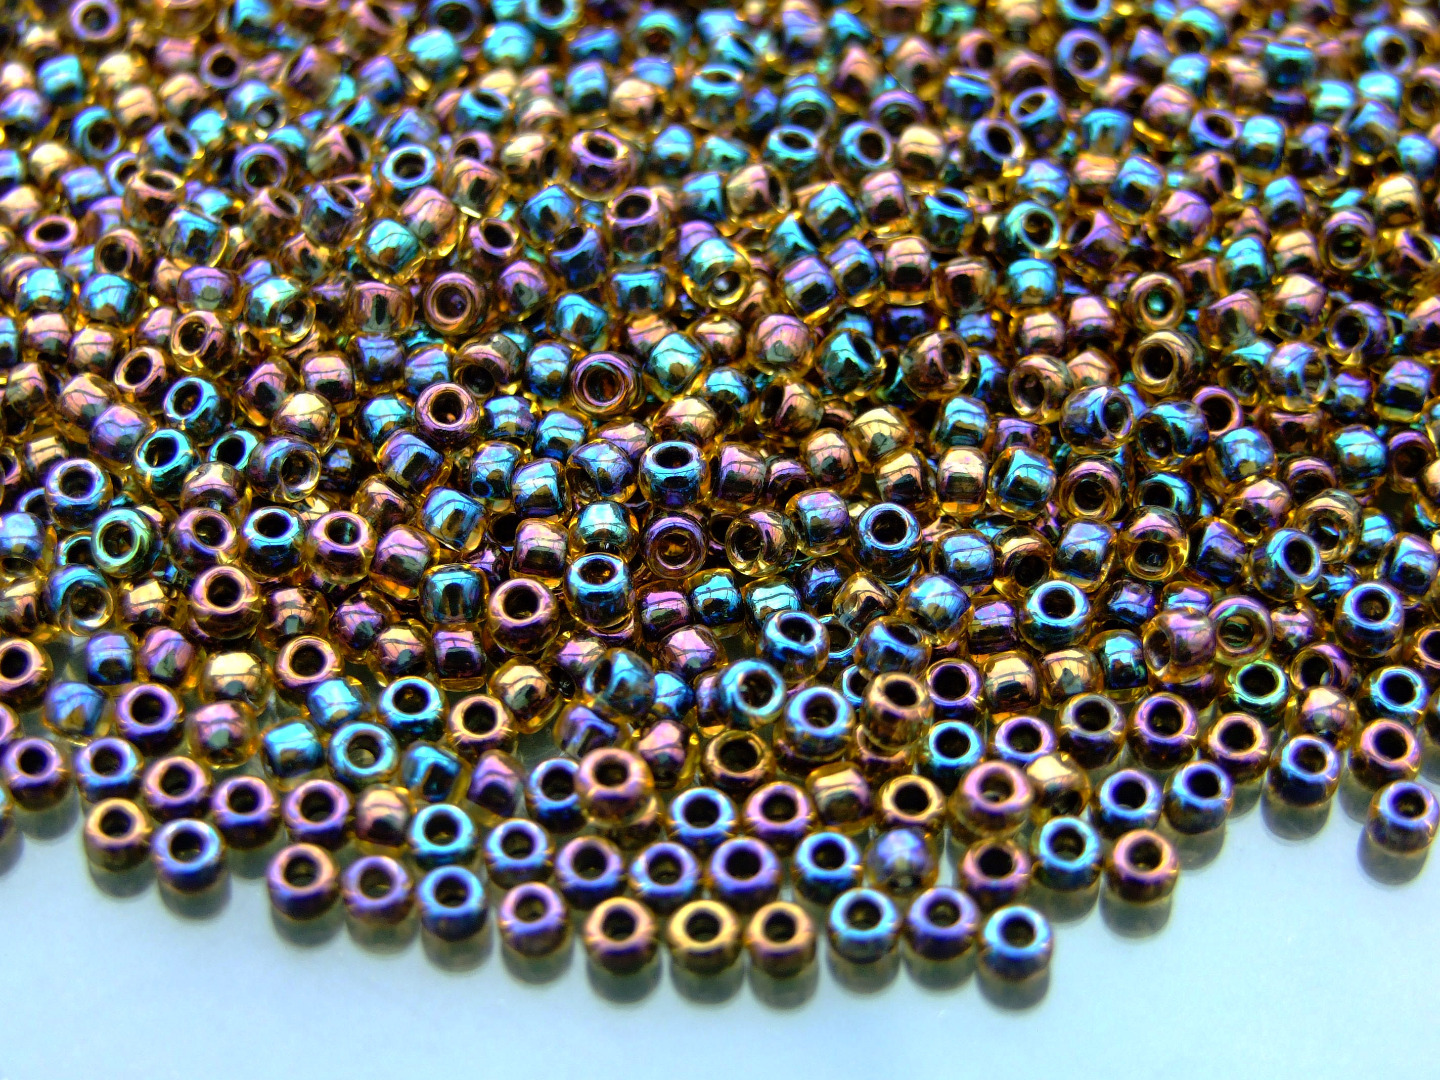 10g-Toho-Japanese-Seed-Beads-Size-8-0-3mm-180-Colors-To-Choose thumbnail 155